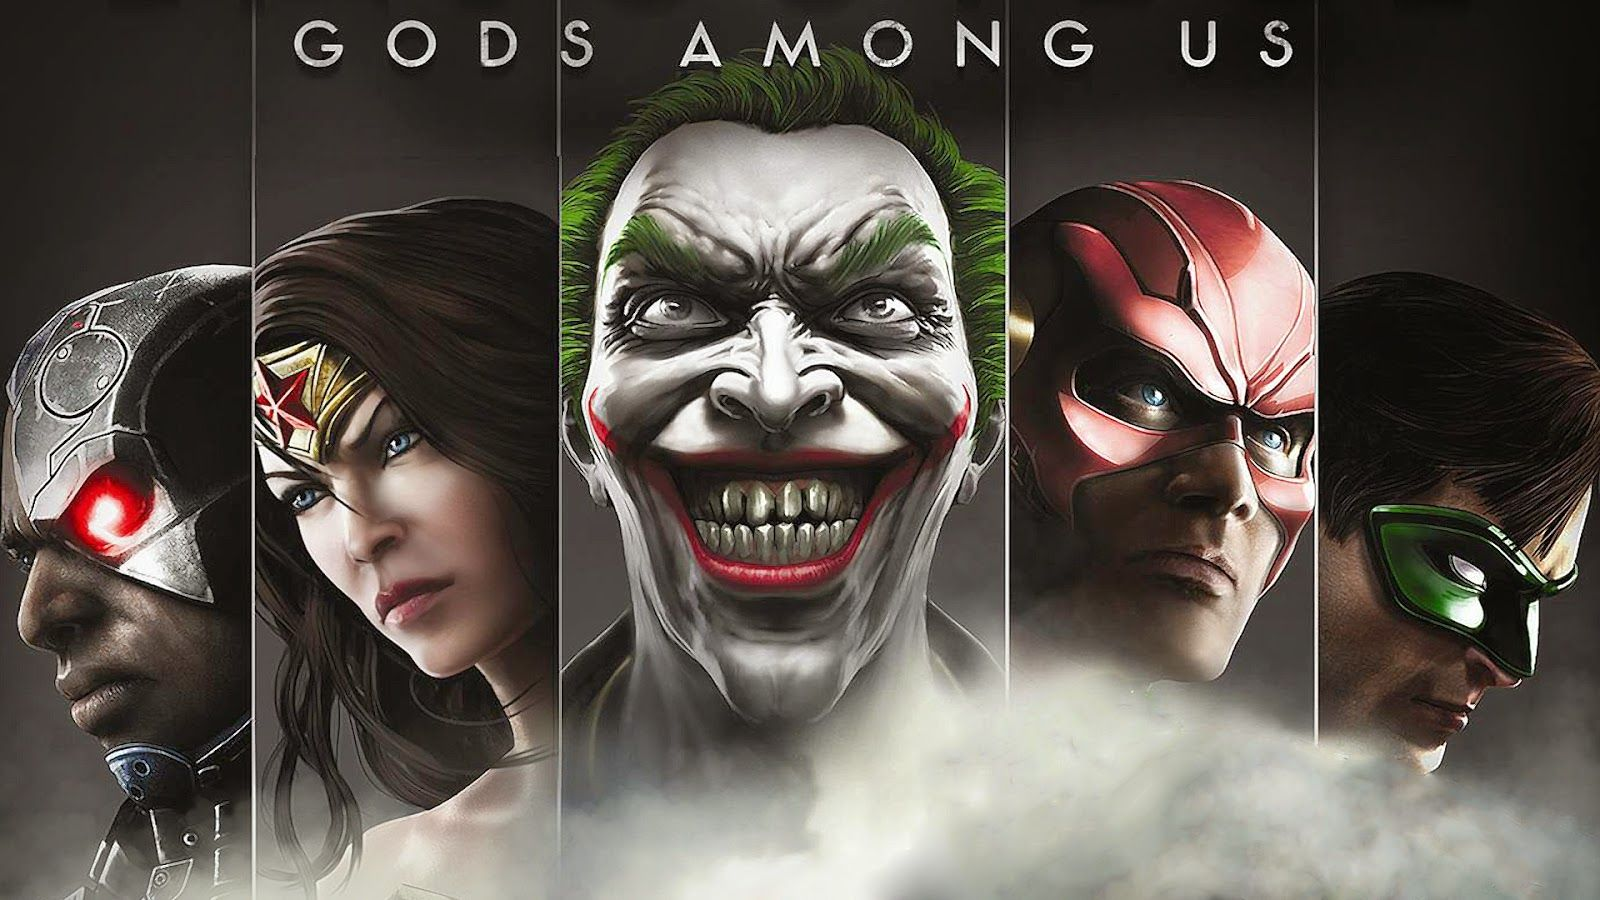 Free Download Pc Games And Software Injustic Gods Among Us Free Download Pc Game Injustice Game Injustice Xbox 360 Games